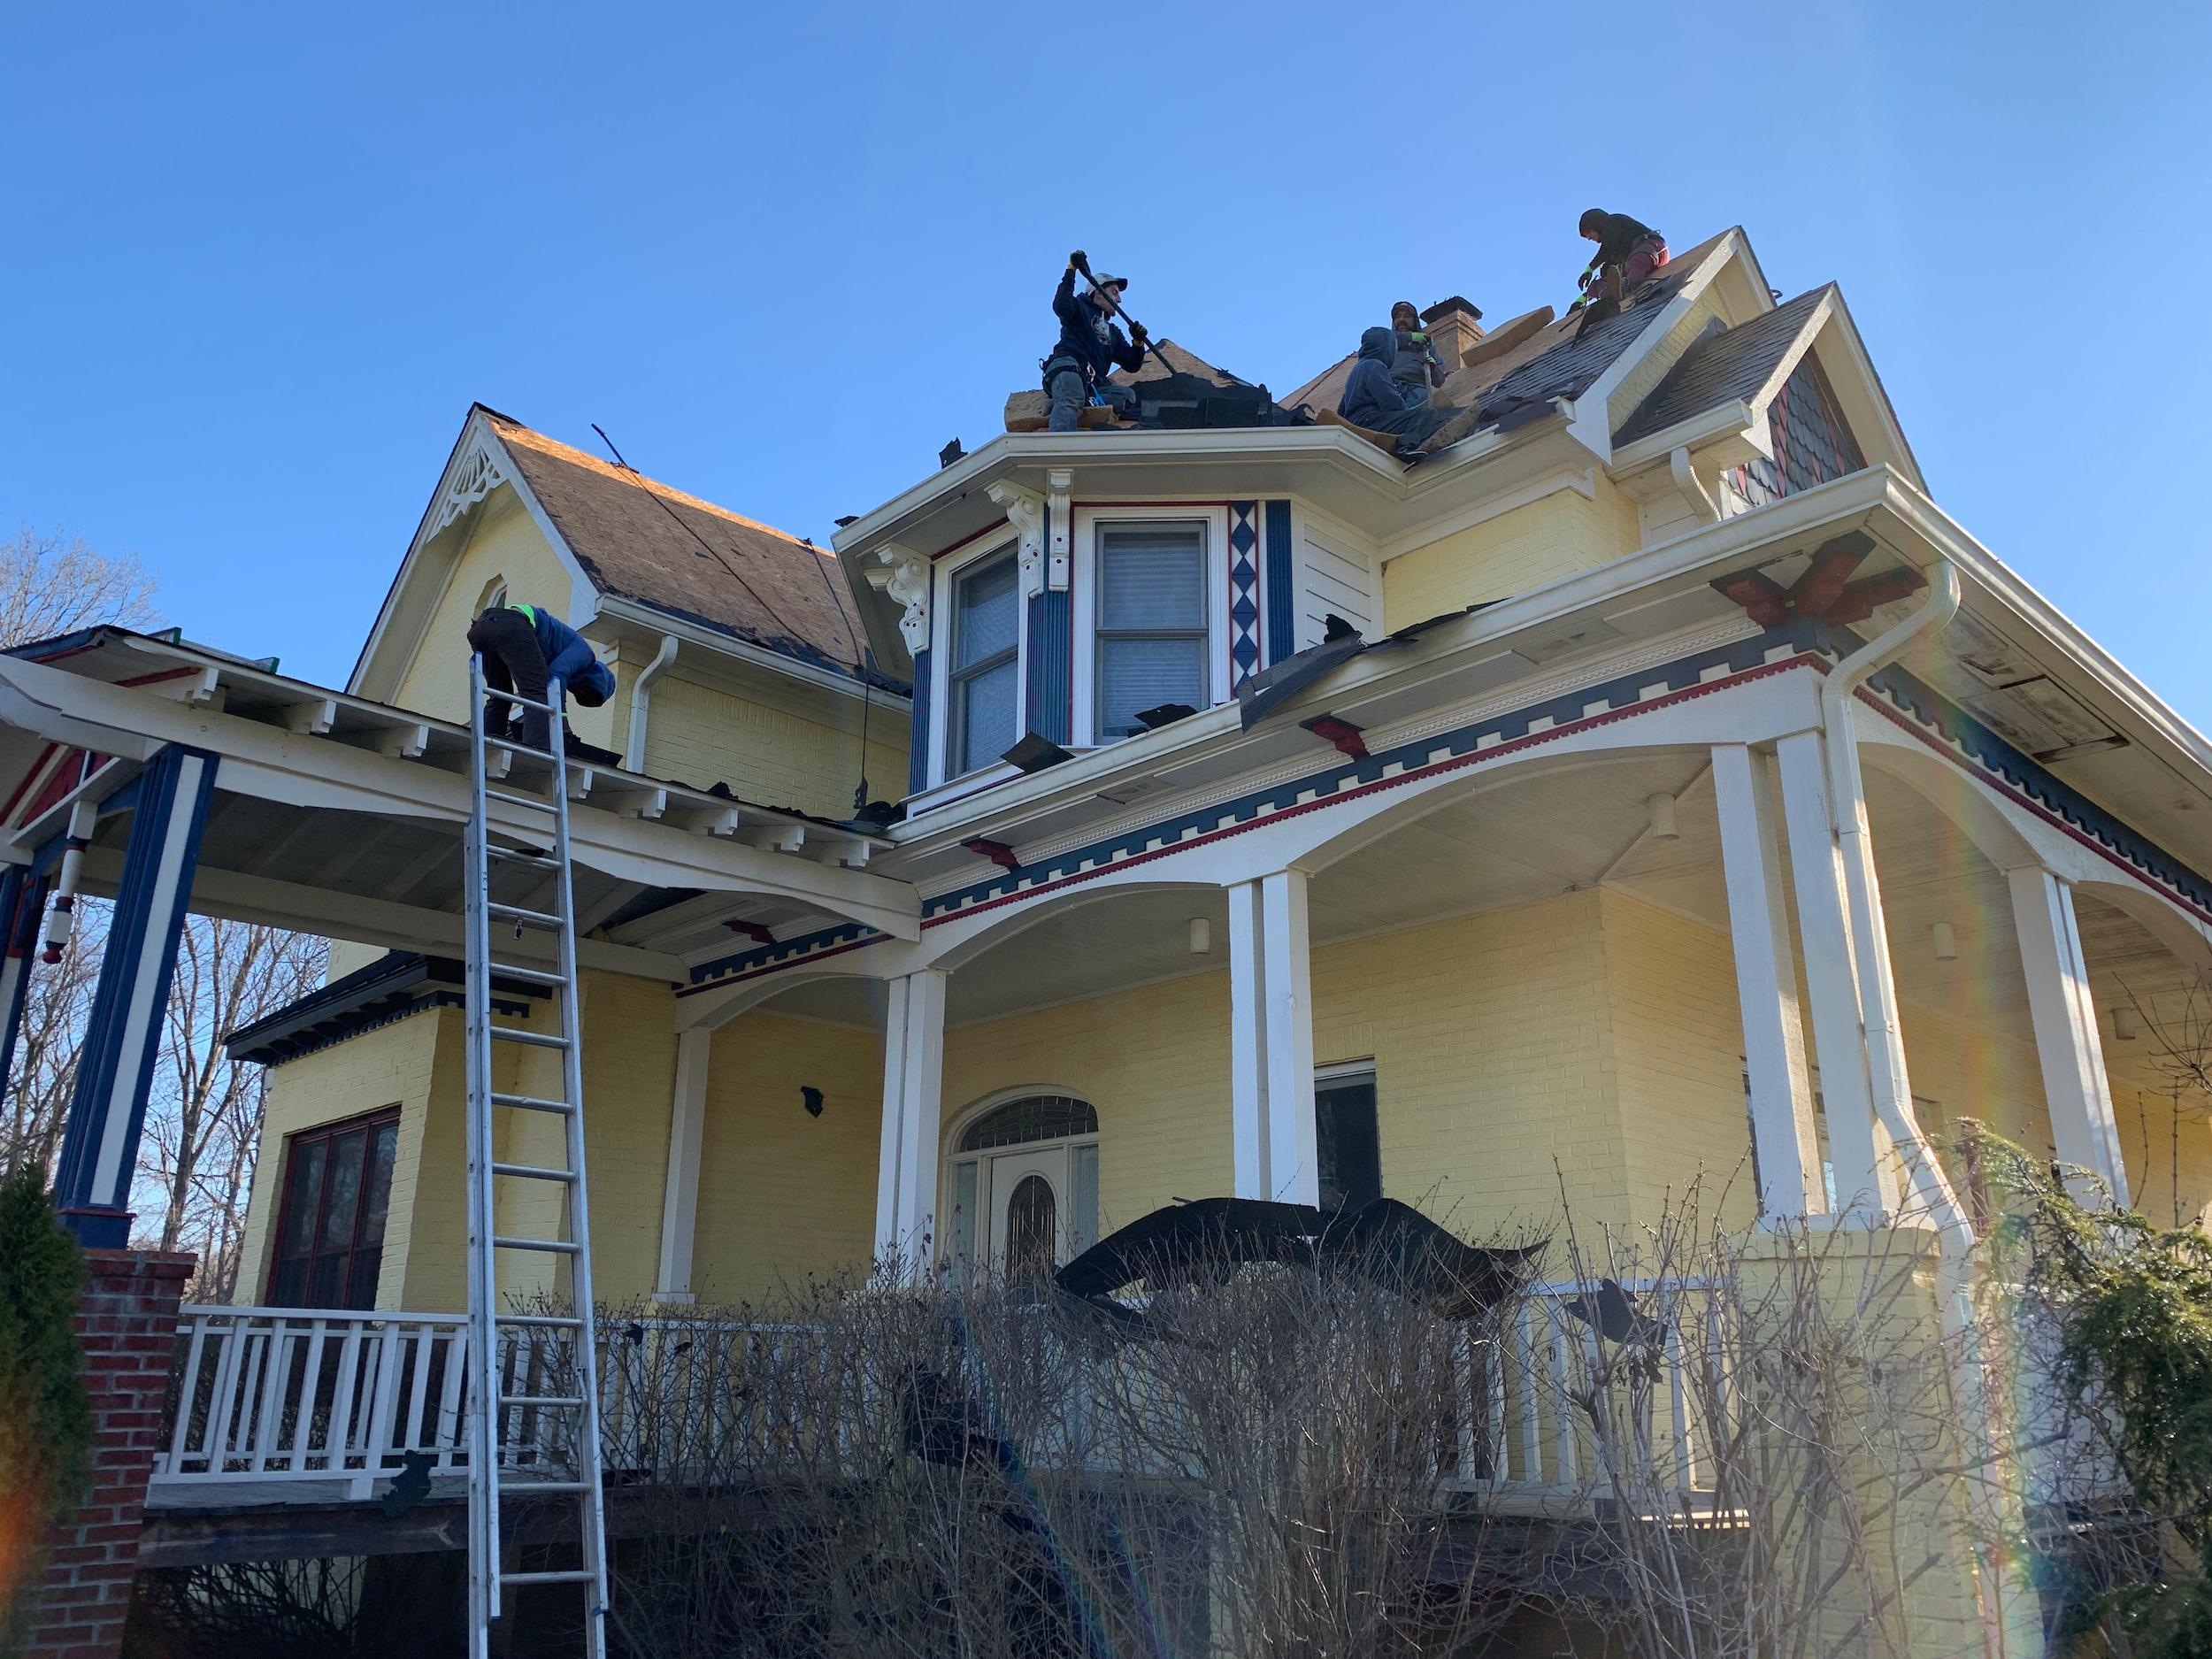 Residential roofers removing the shingles from a client's house.